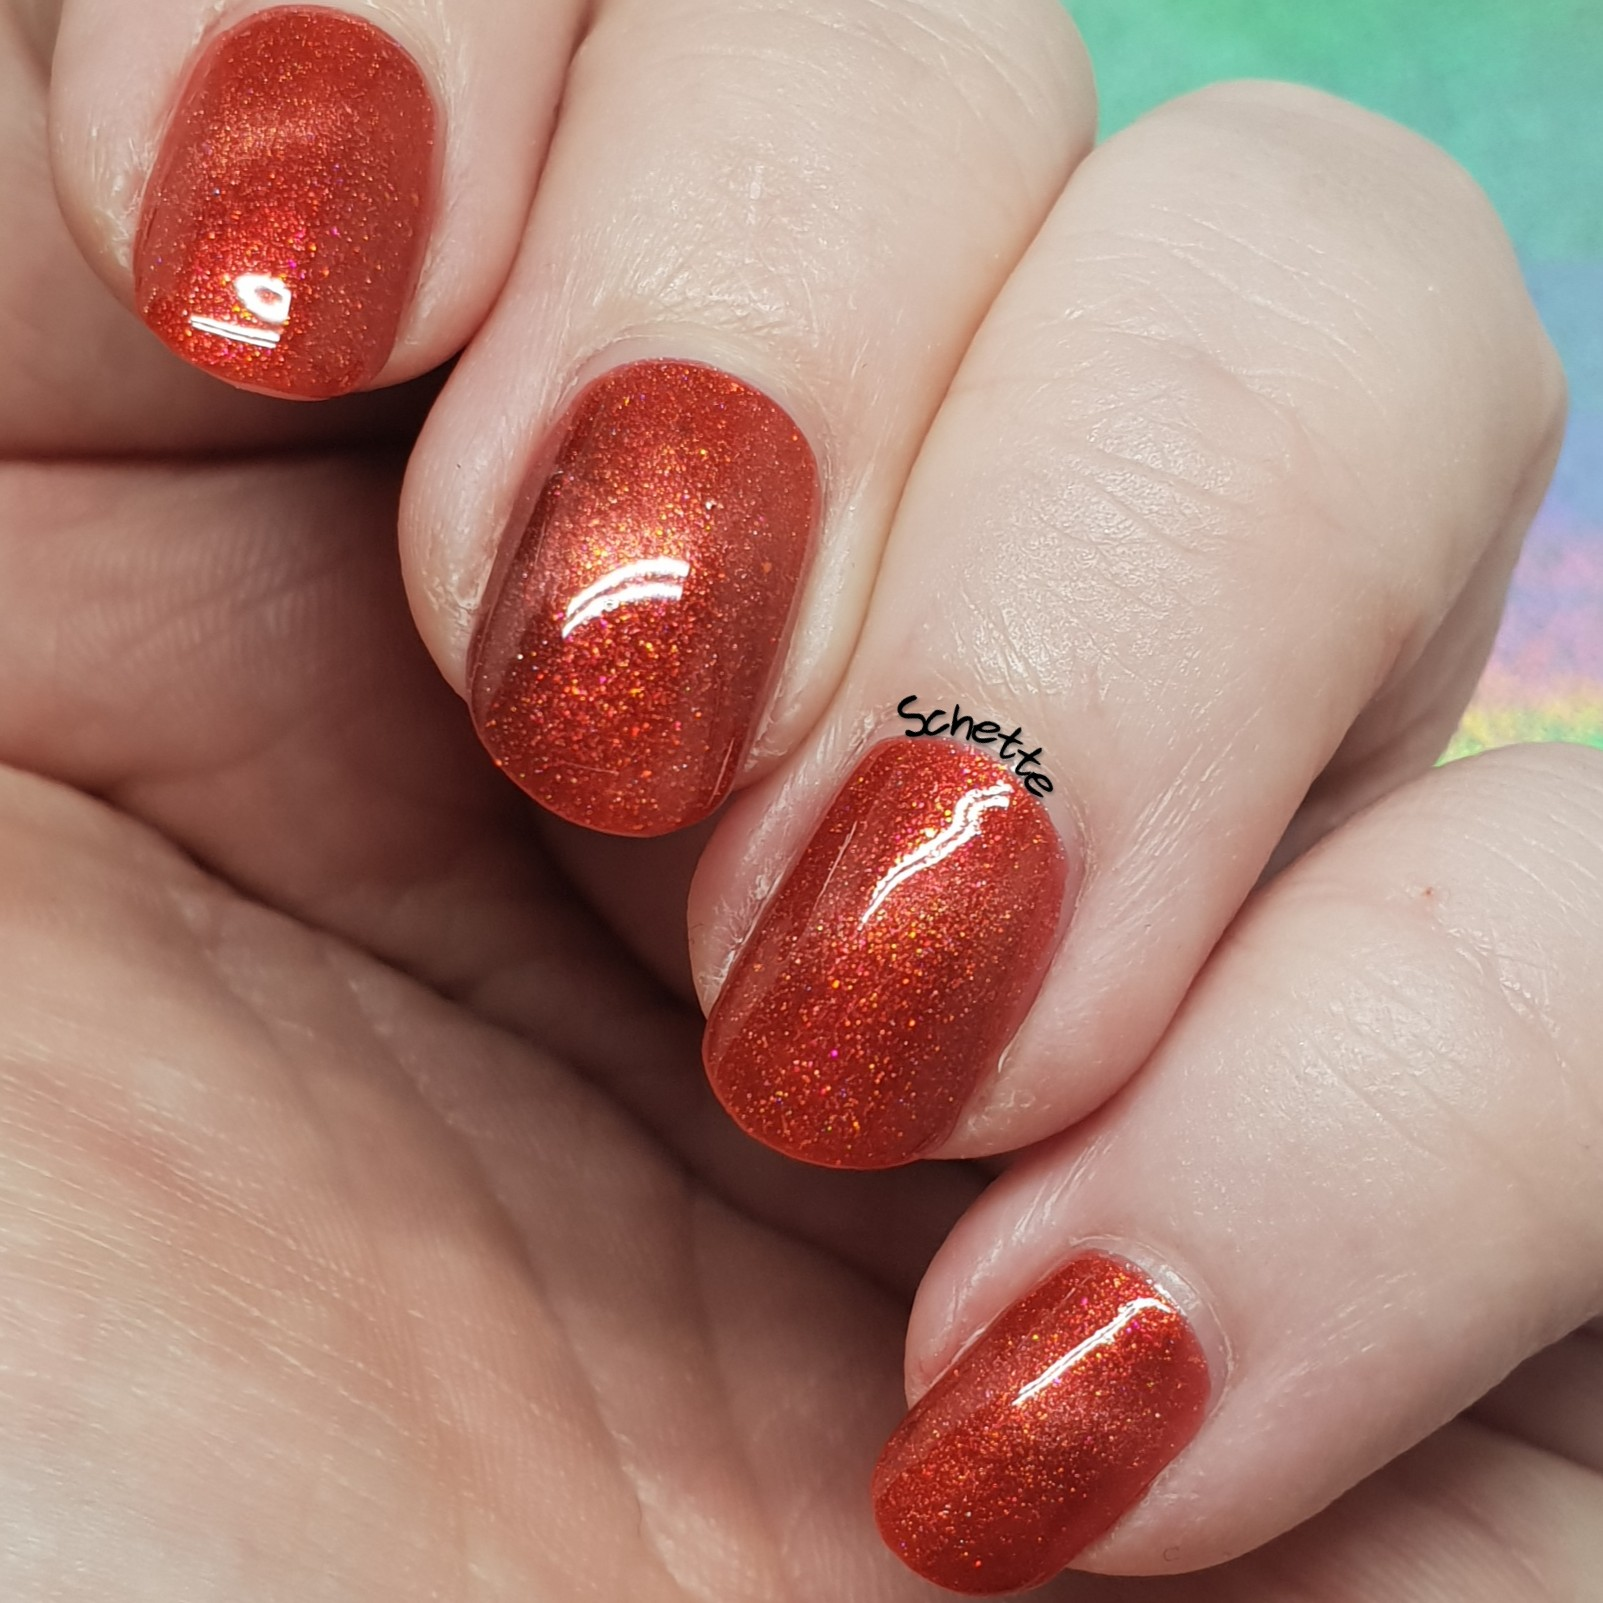 DRK Nails - I am not made of Glass